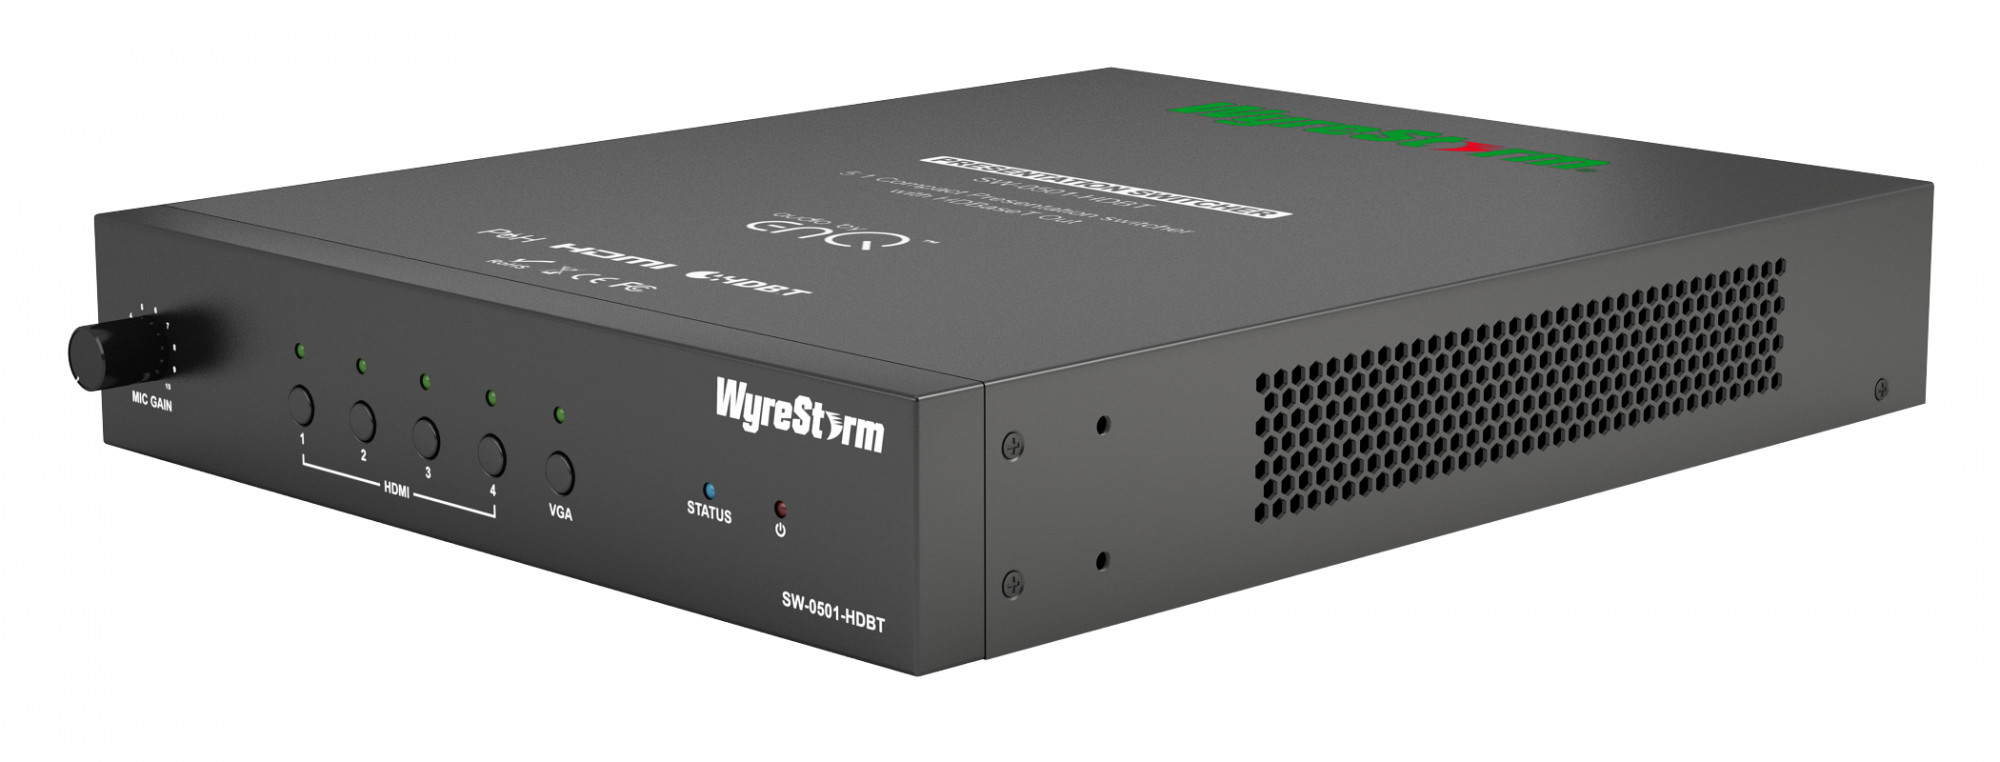 Video Hdmi Products Electronic Custom Distributors Details About 4x4 Cat5e Cat6 Matrix Auto Switch Splitter Extender Wyresw 0501 Hdbt Wyrestorm 5x1 Over Hdbaset Presentation Switcher Scaler With Mic